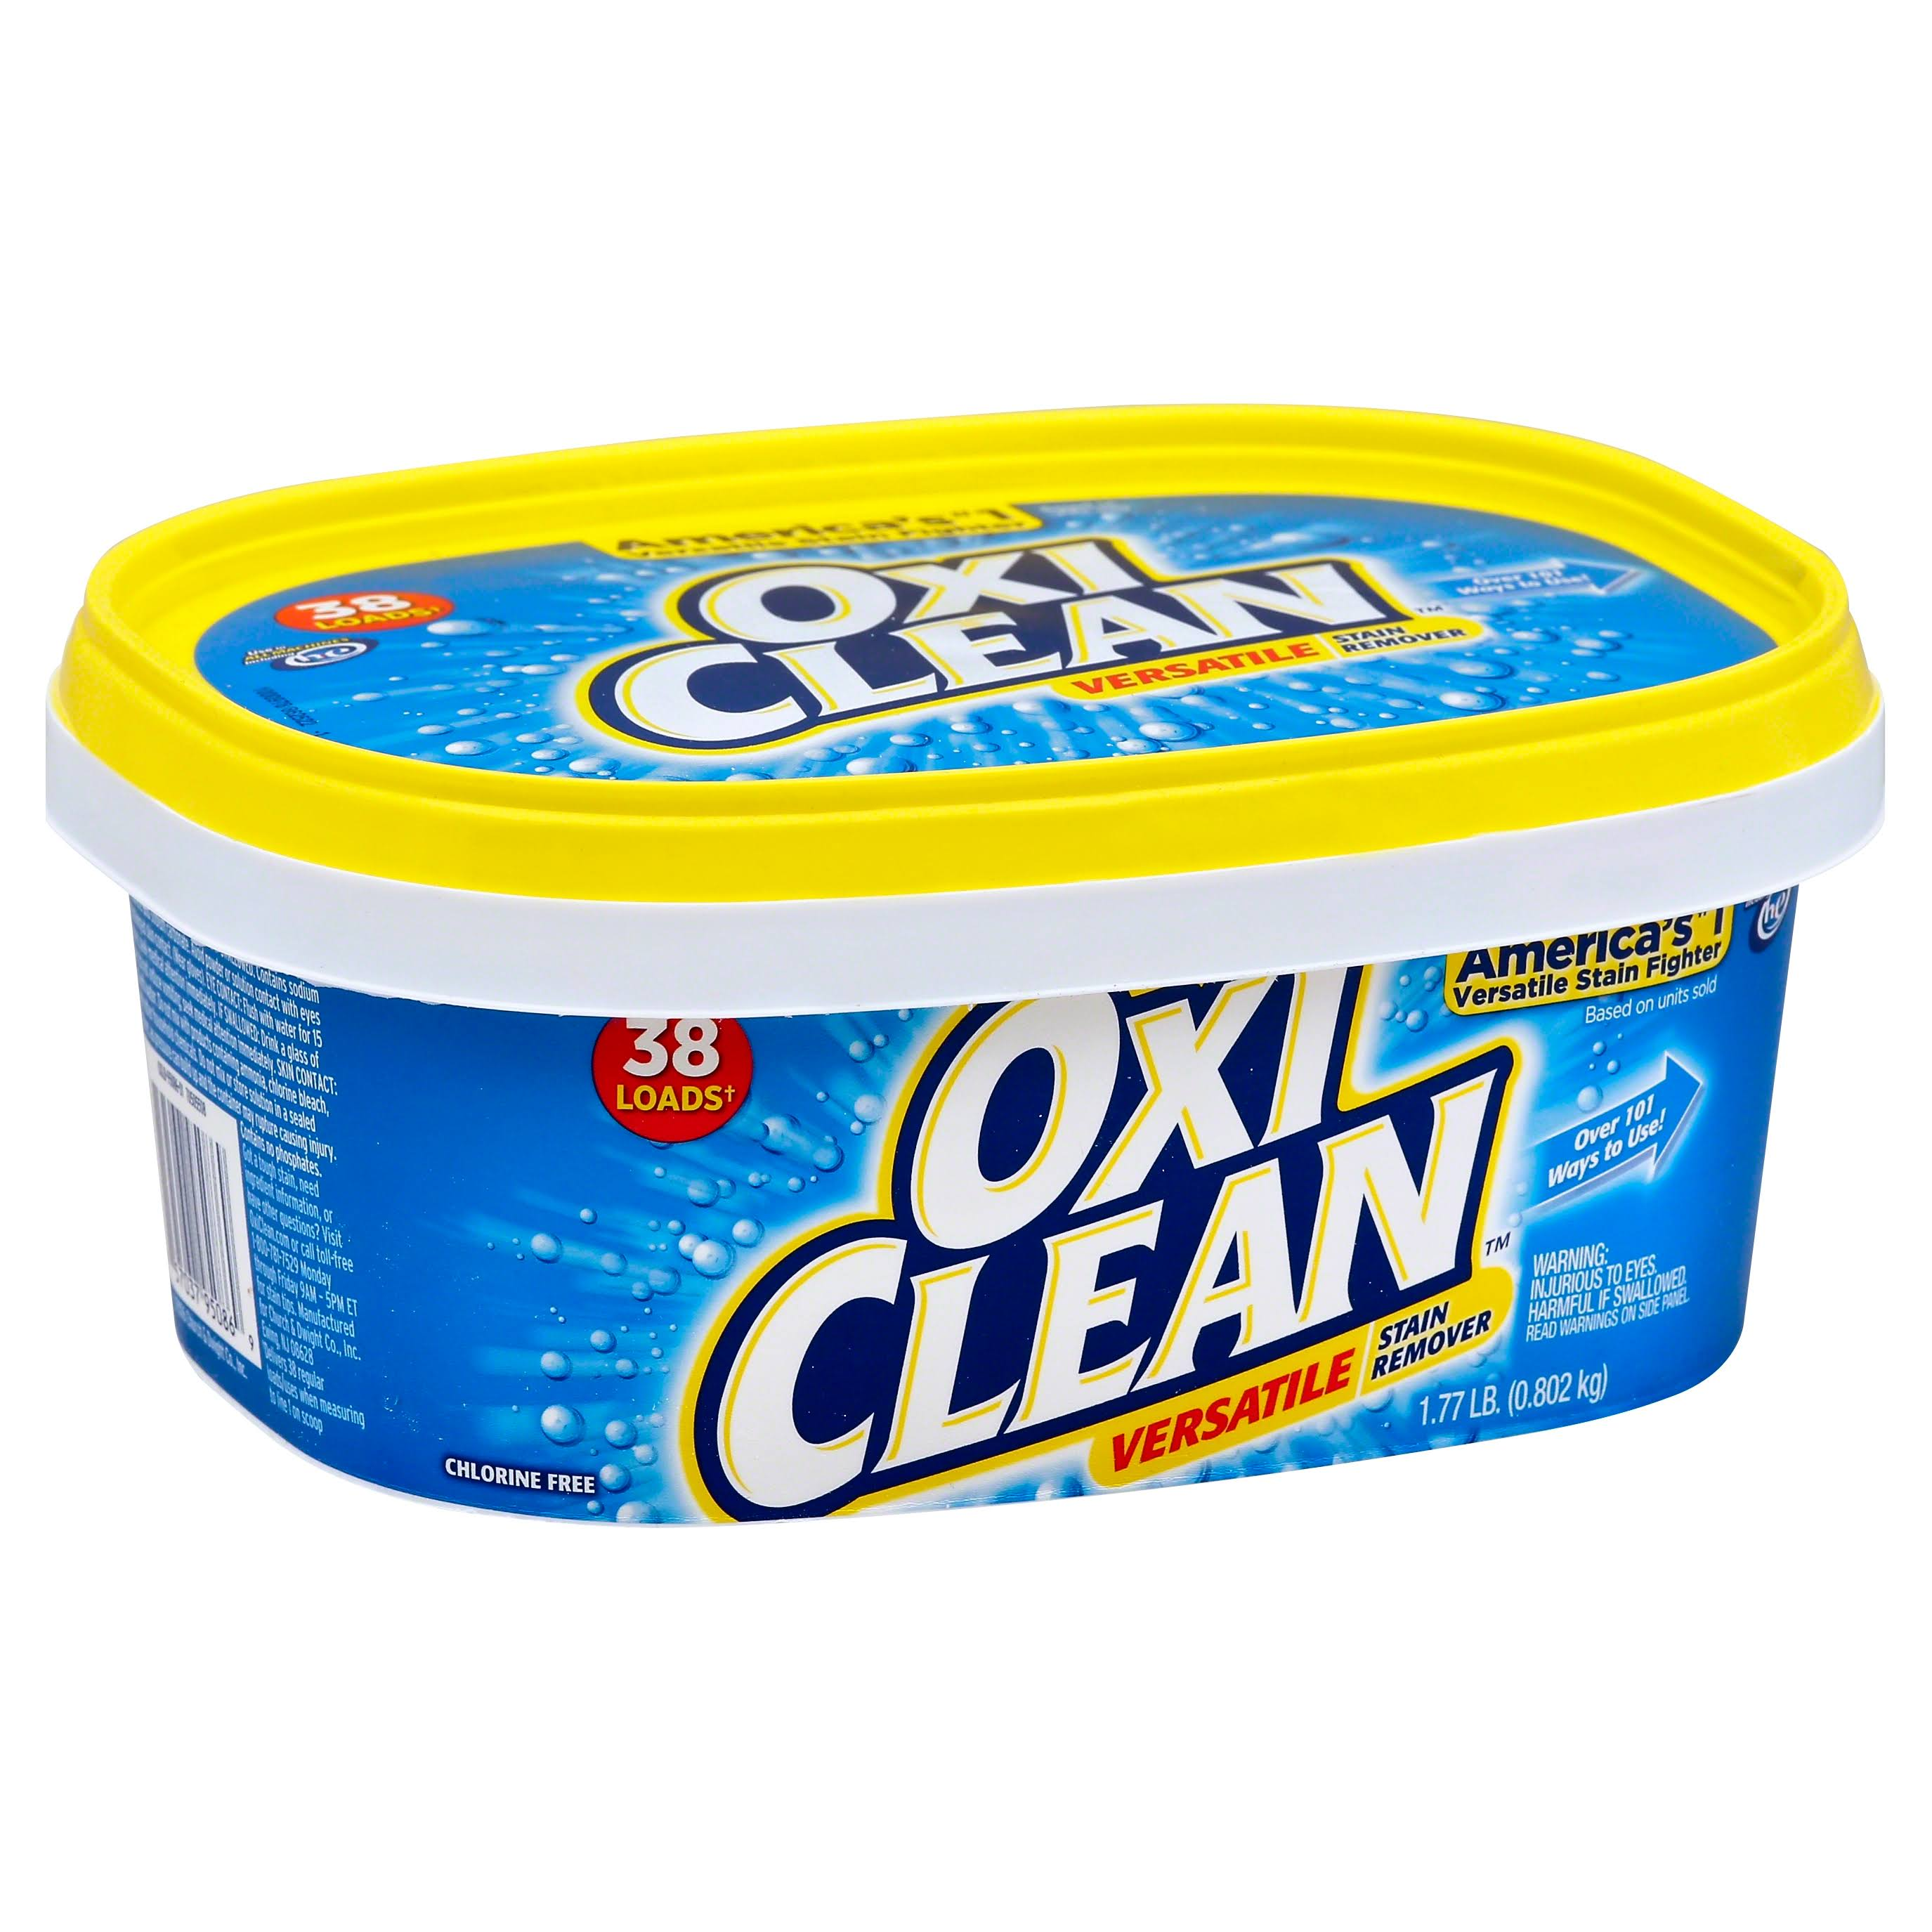 OxiClean Versatile Stain Remover - 38 Loads, 1.77lb